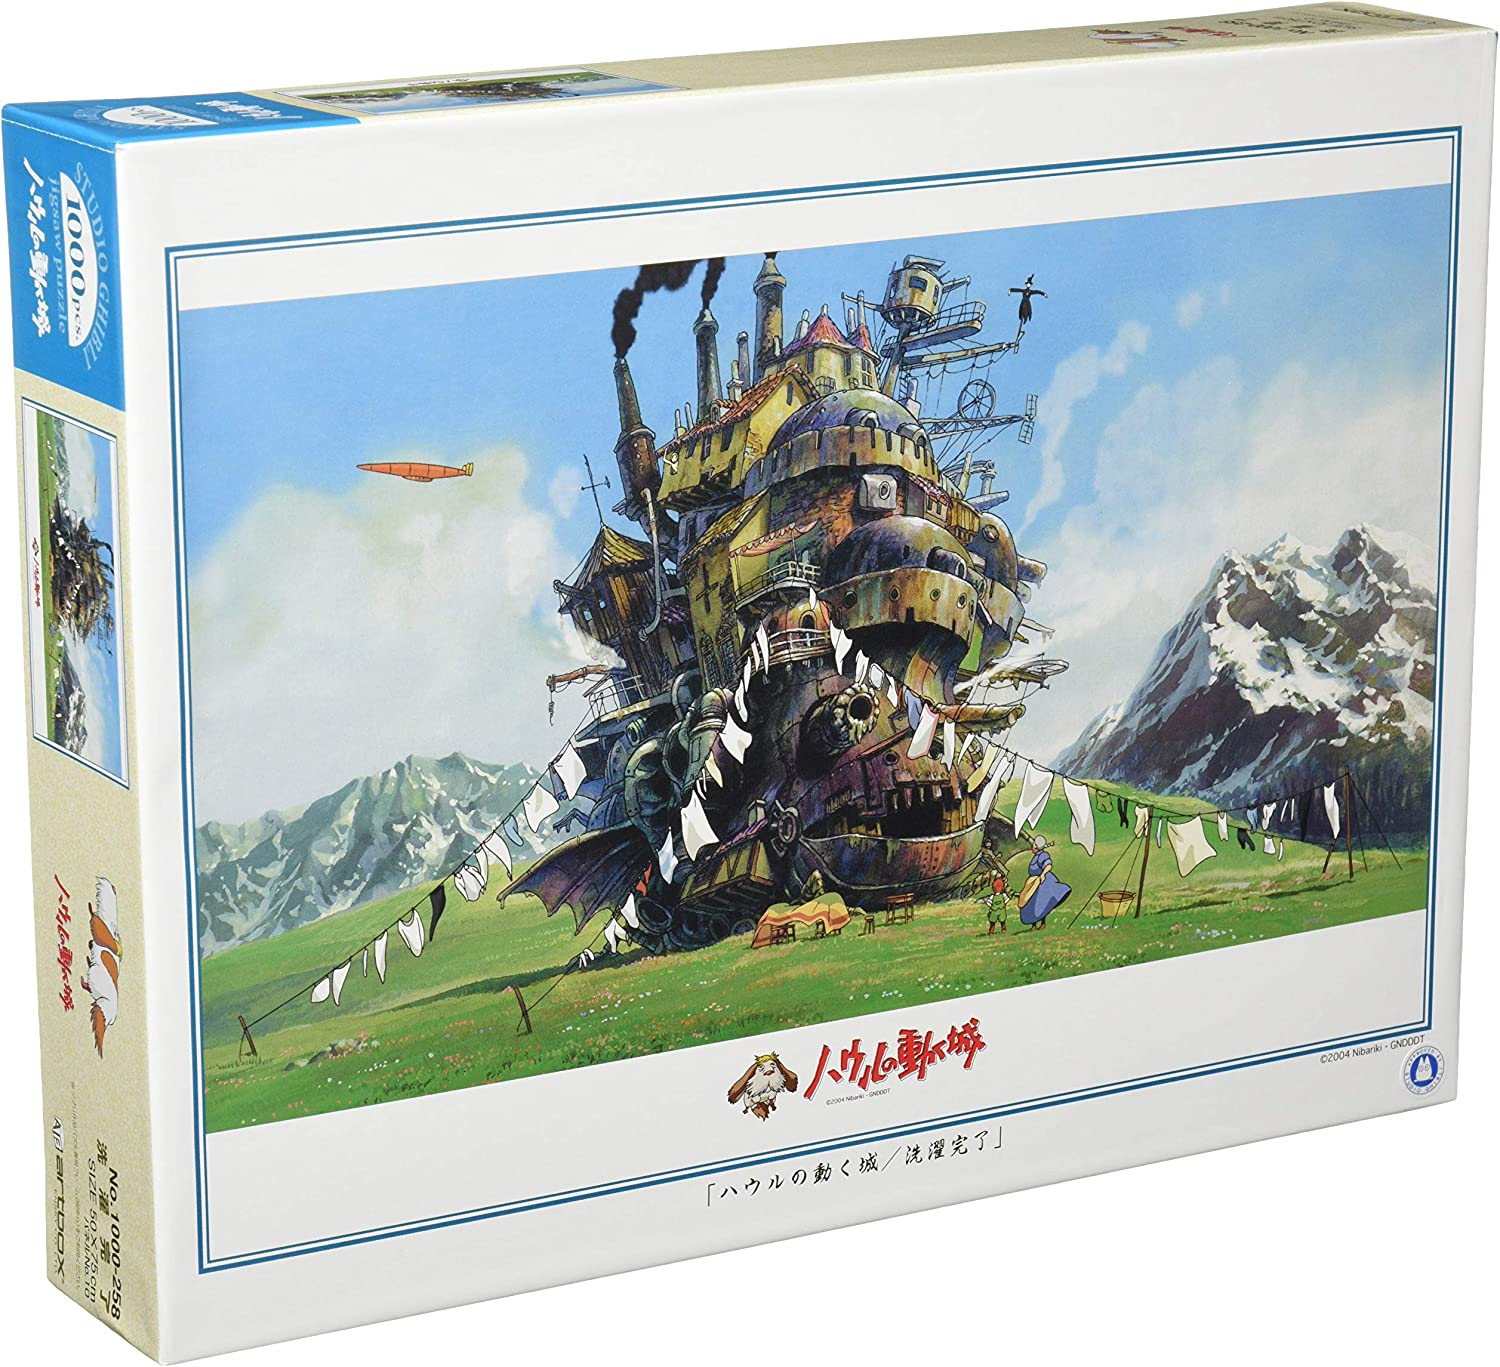 ensky Howl's Moving Castle Finished Washing Jigsaw Puzzle (1000 Piece)